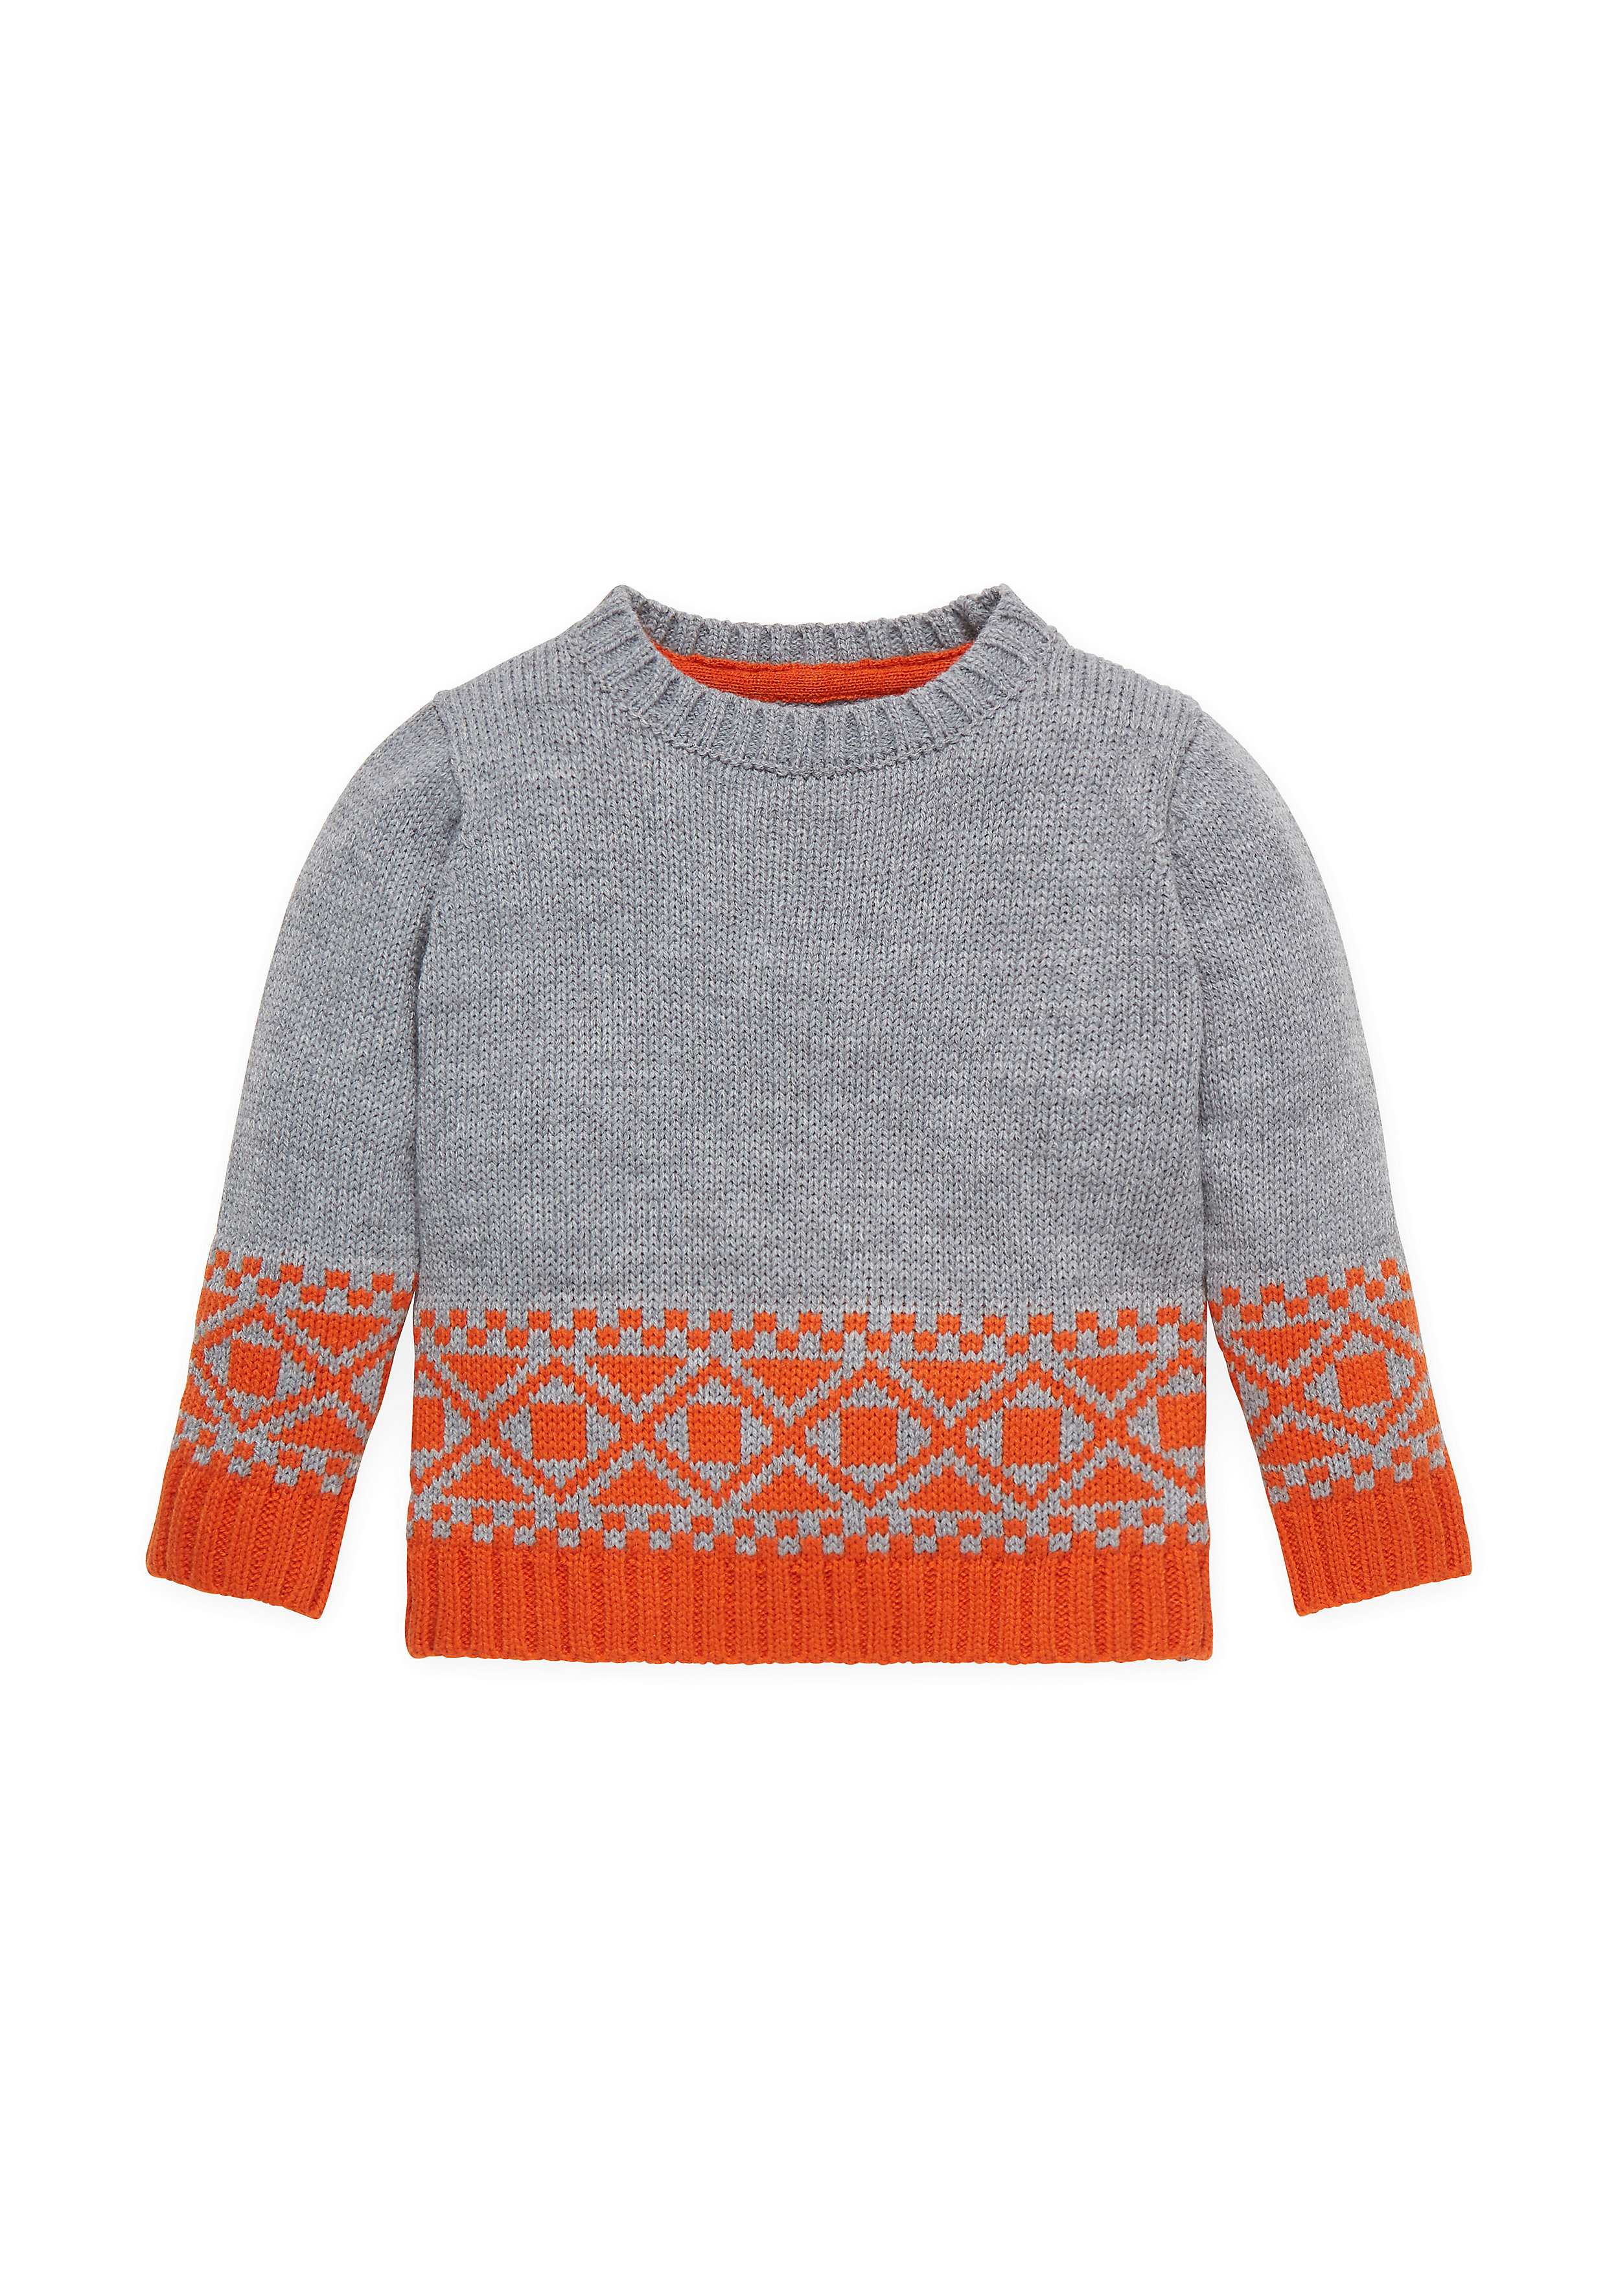 Mothercare   Boys Full Sleeves Sweaters Geo Knot - Grey